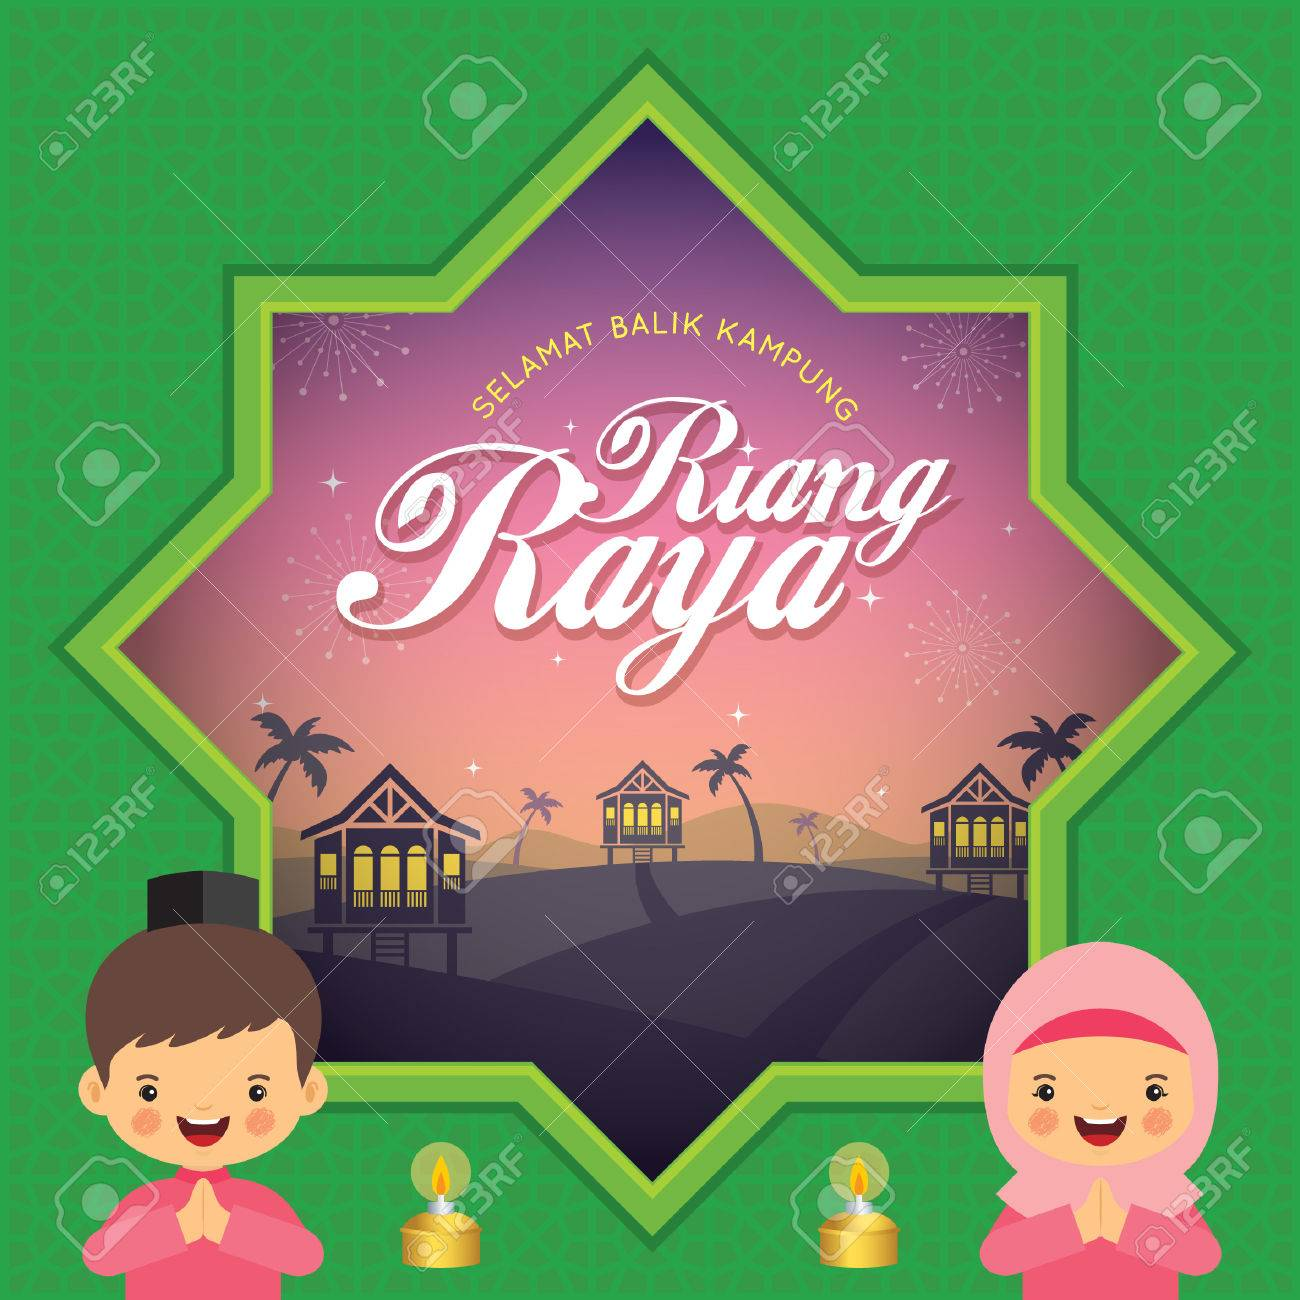 Hari Raya Aidilfitri Greeting Card Template Cute Muslim Boy And